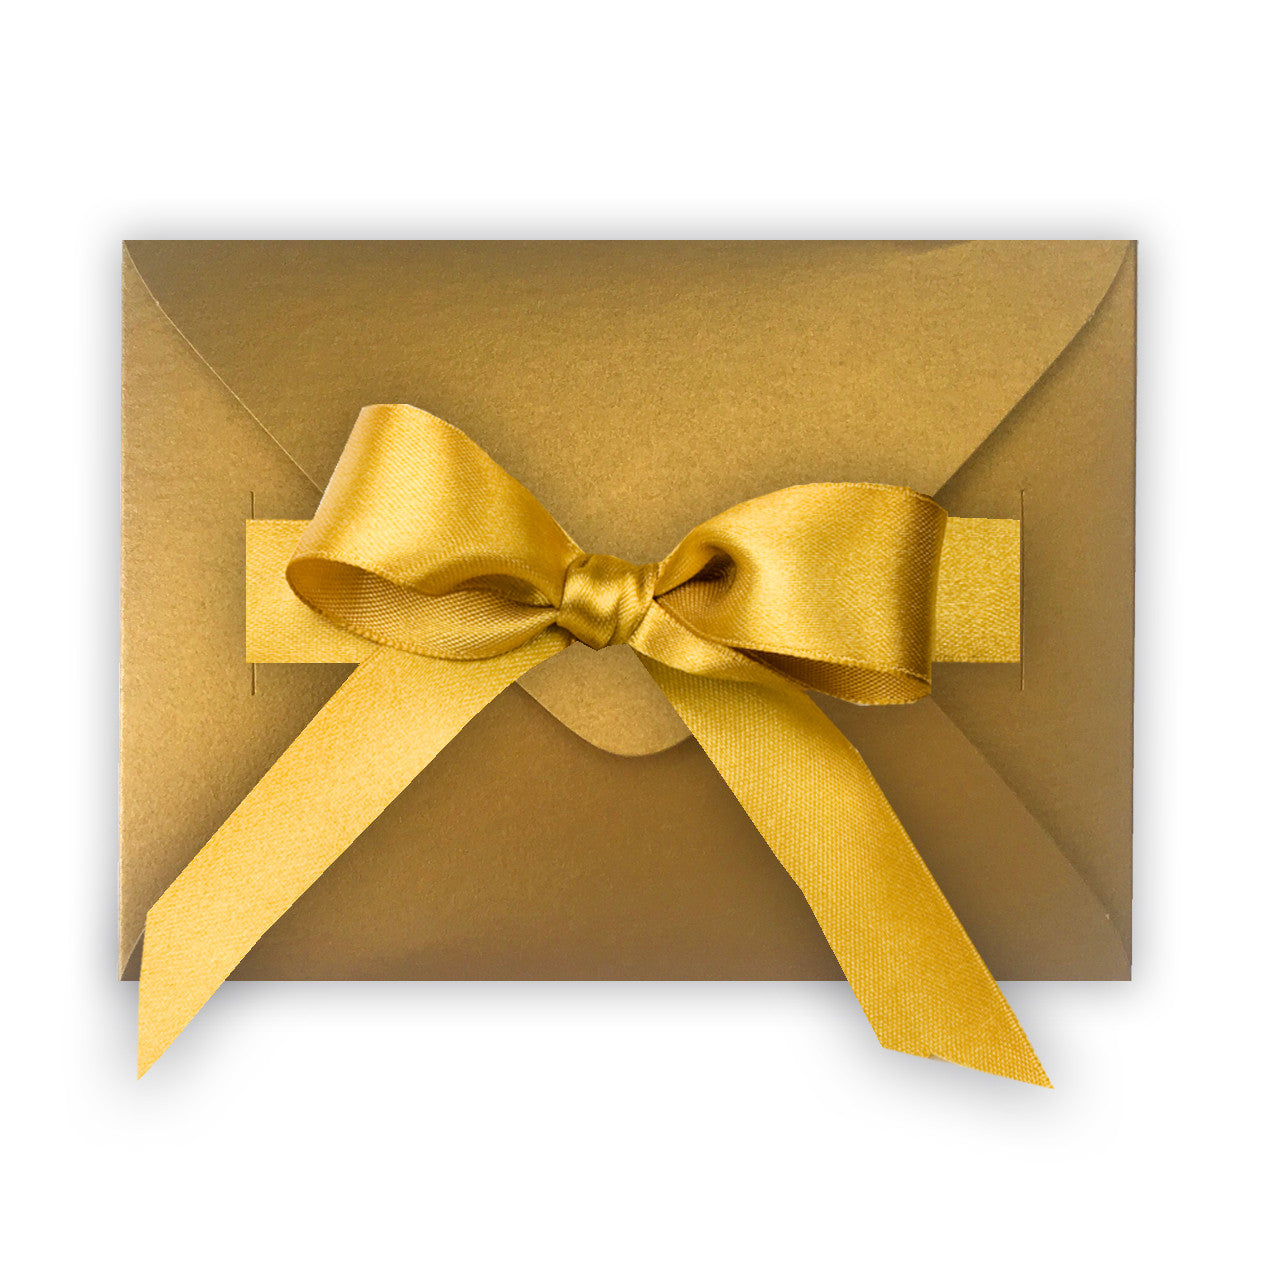 metallic gold gift envelope box with ribbon grow each day